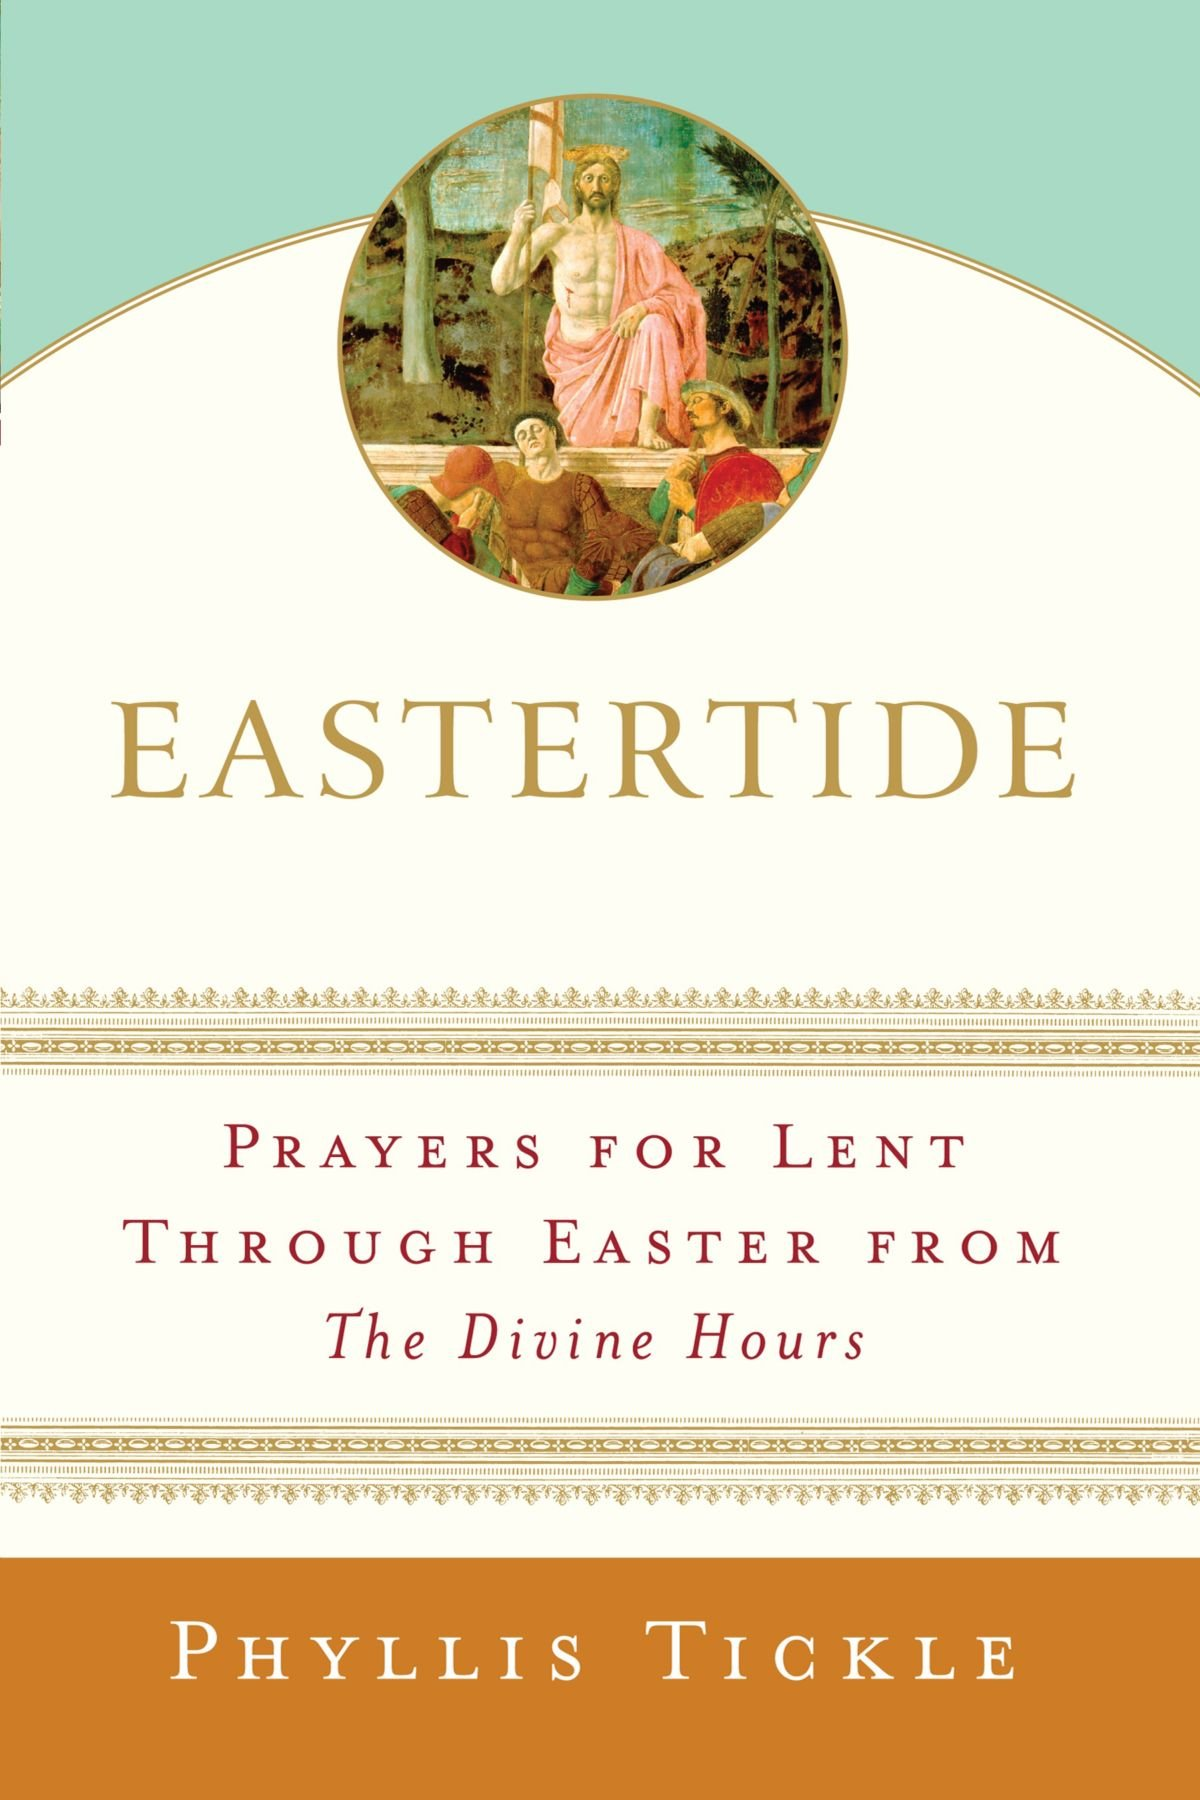 Eastertide: Prayers For Lent Through Easter From The Divine Hours (tickle,  Phyllis): Phyllis Tickle: 9780385511285: Amazon: Books